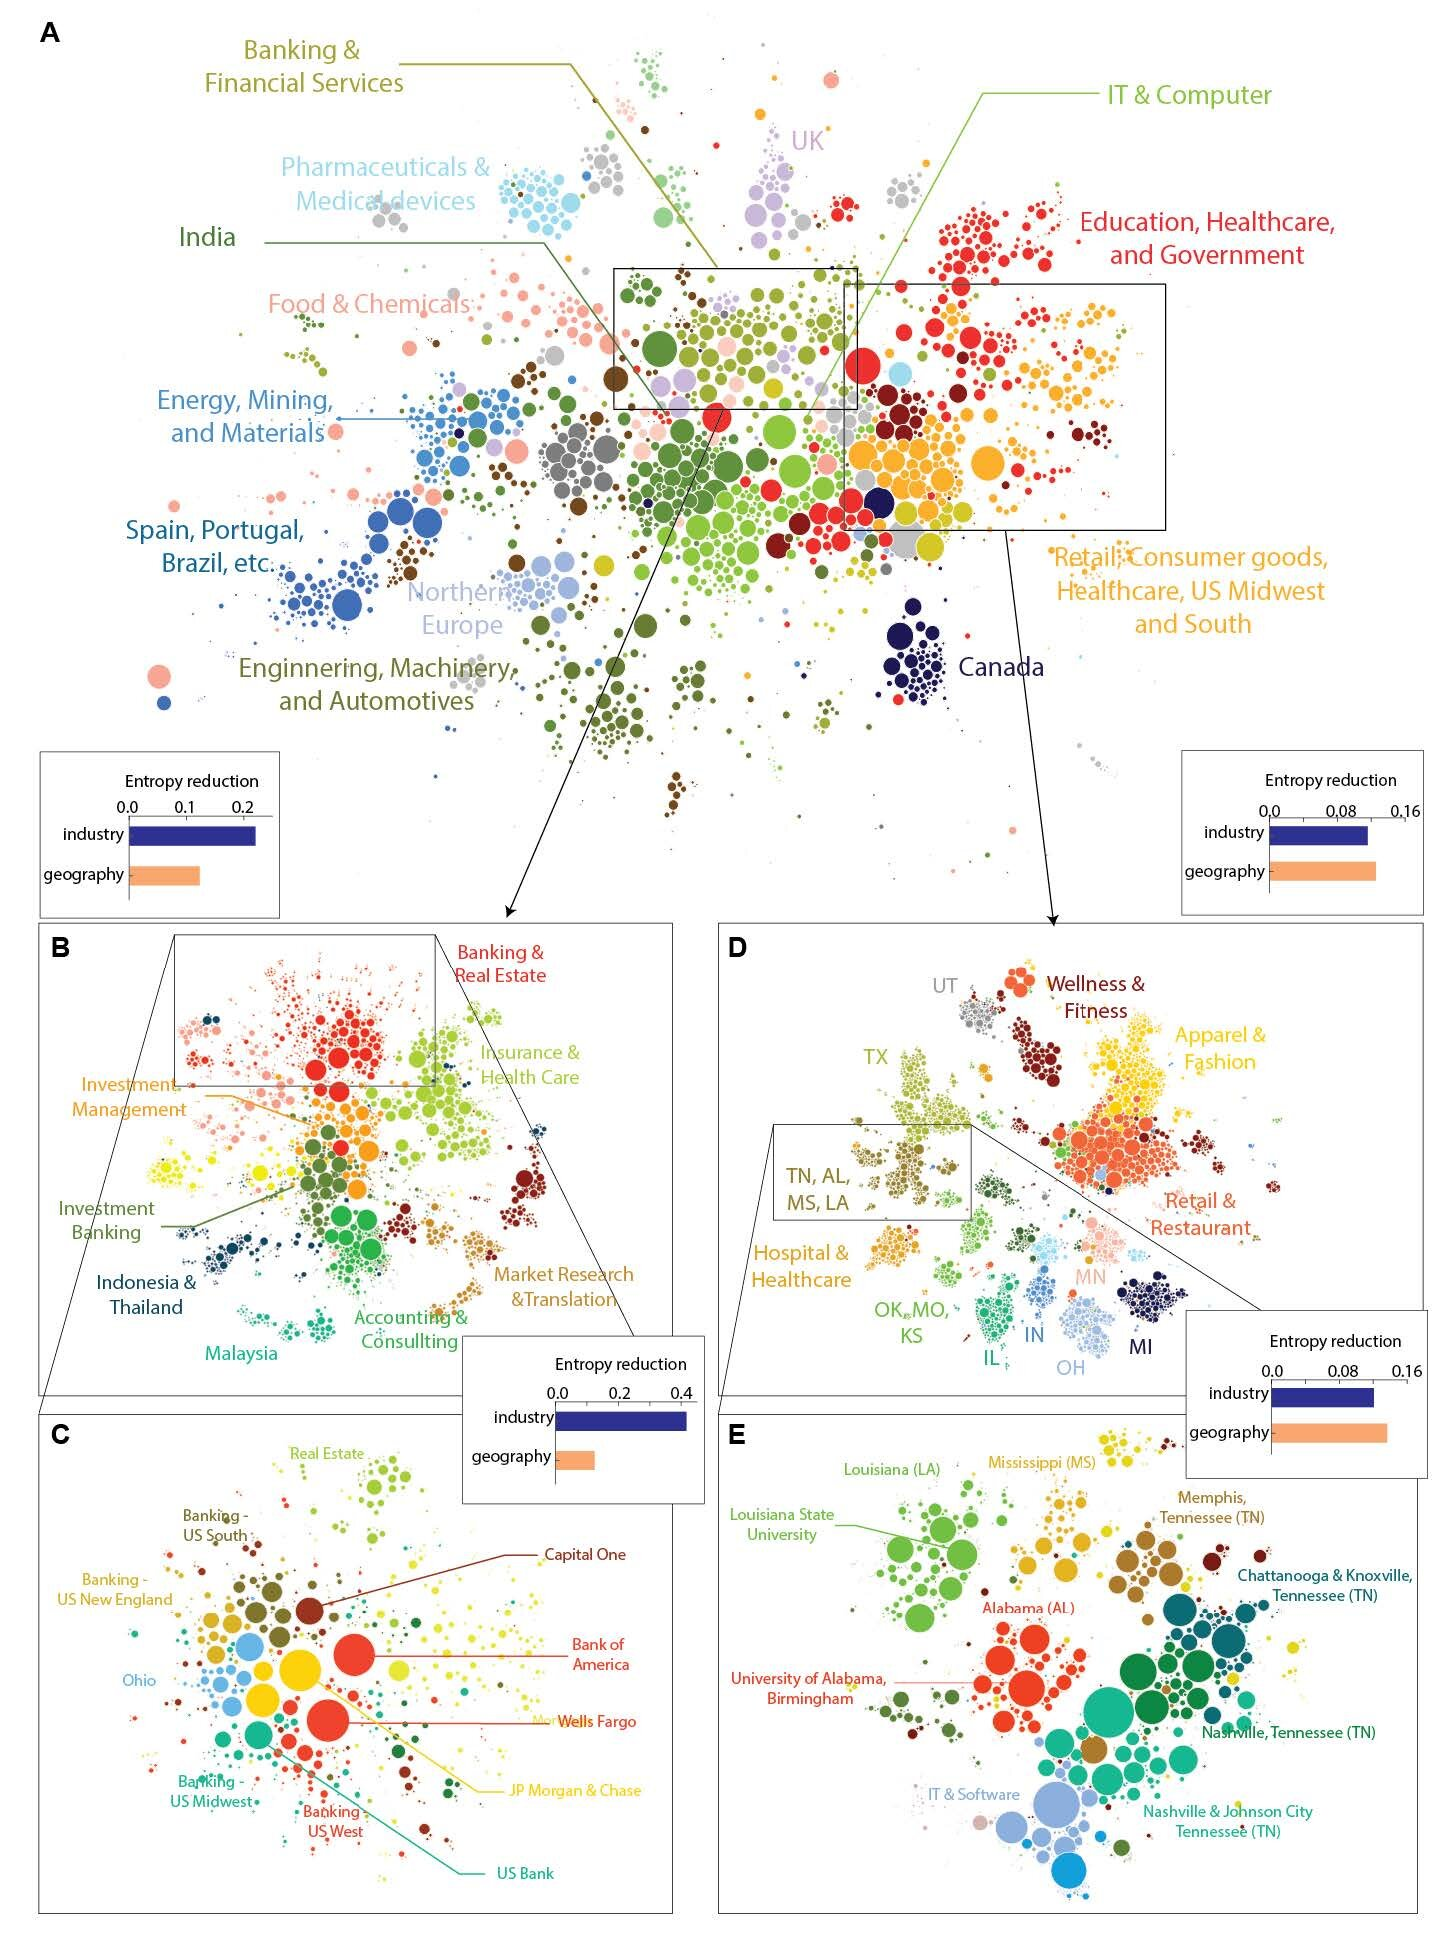 Researchers map global economy in collaboration with LinkedIn